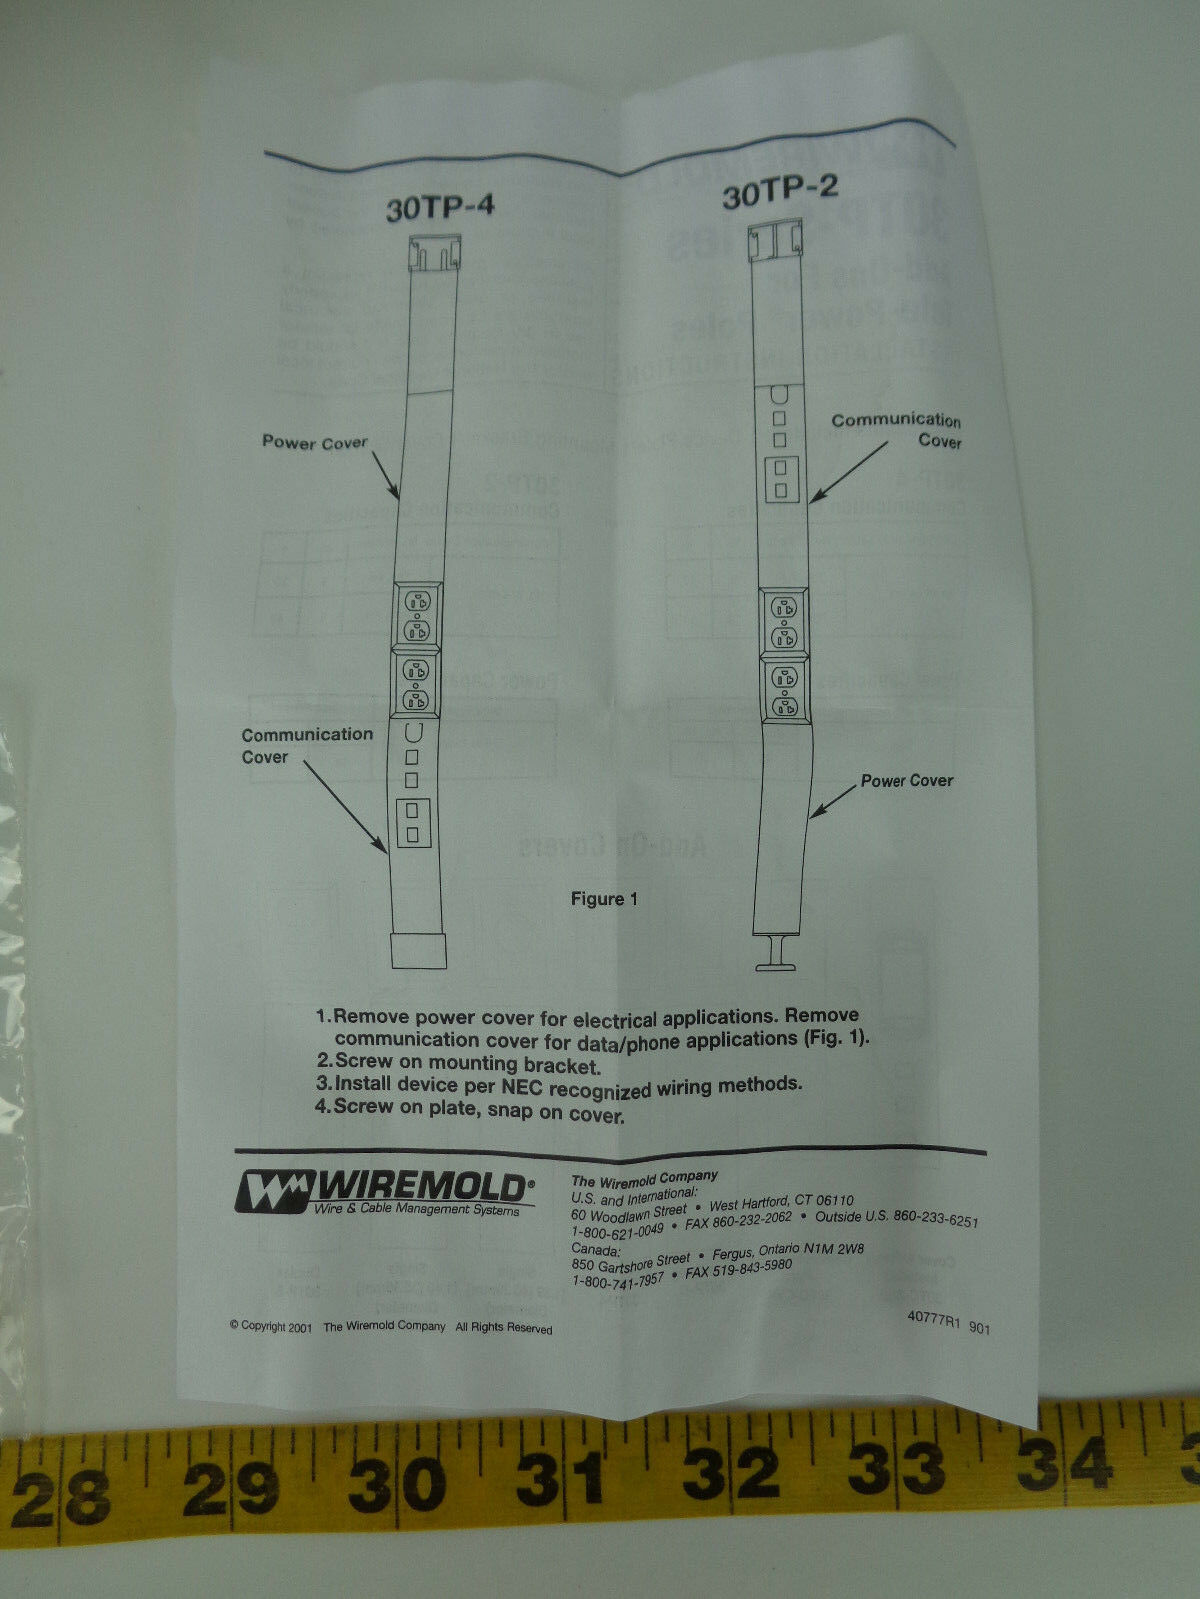 Exelent Wiremold Installation Embellishment - Electrical and Wiring ...